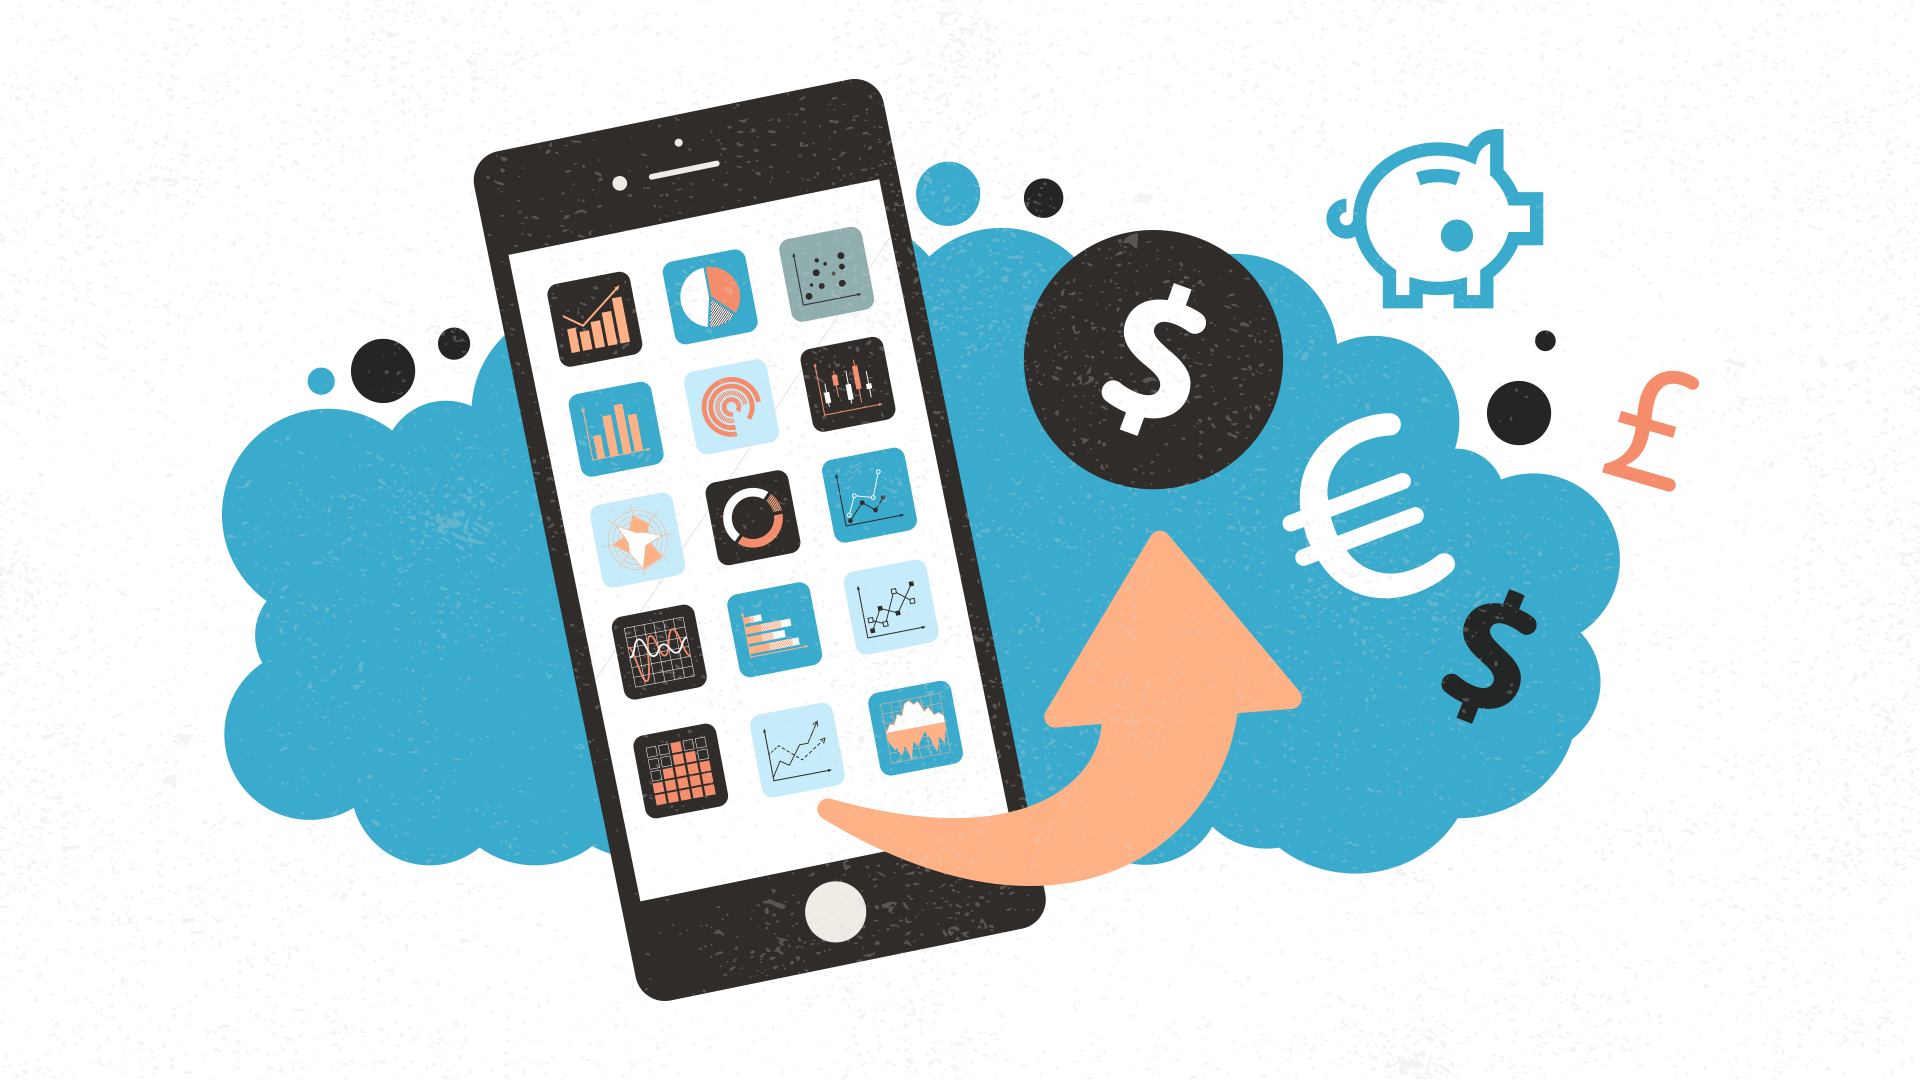 Car rent apps can generate profit thanks to appropriate monetization models described below.